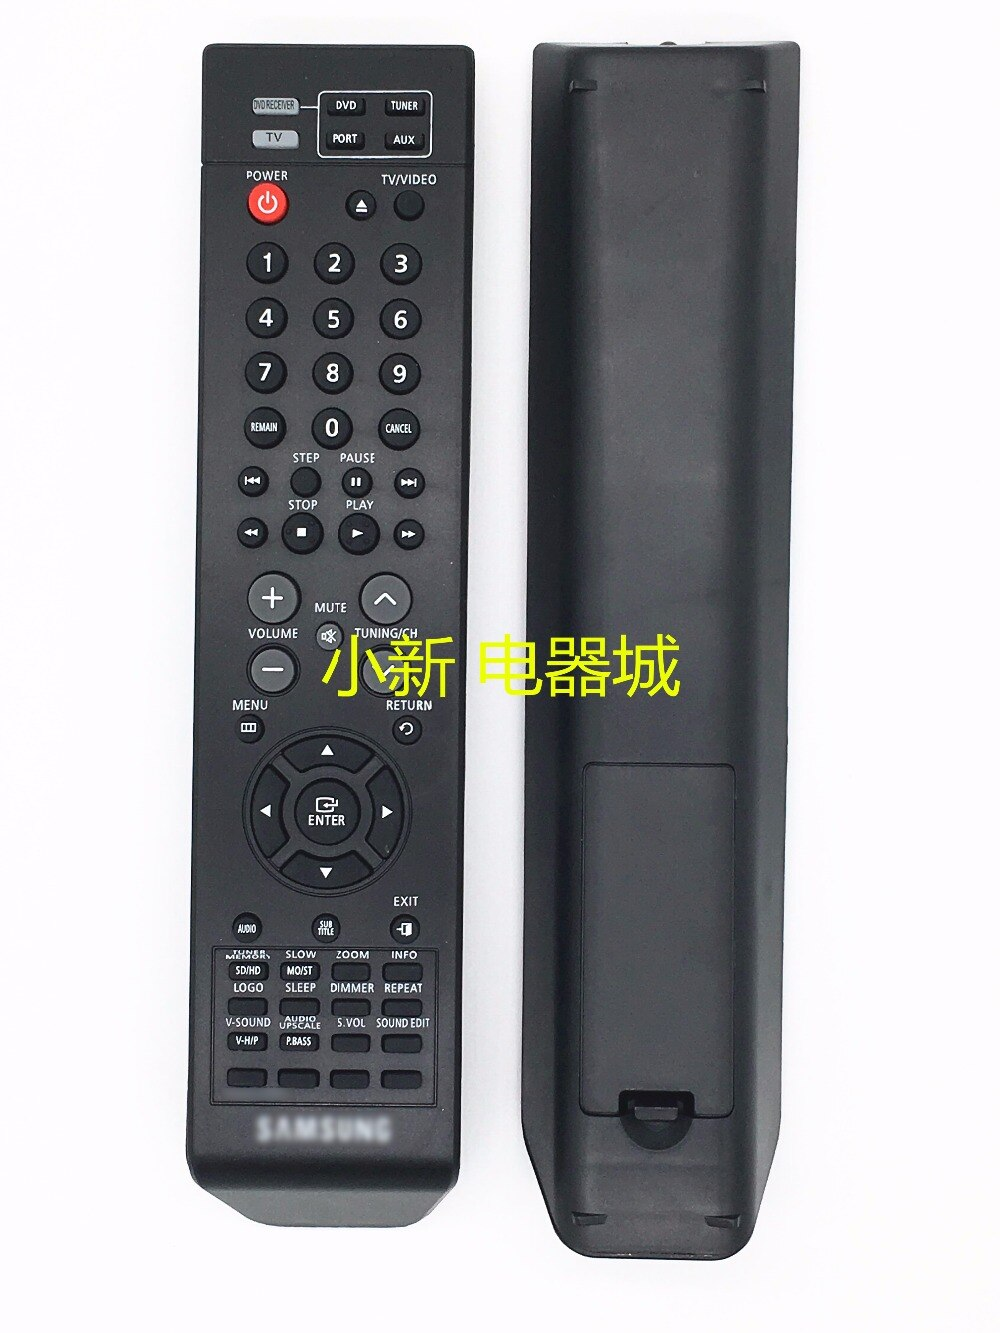 Remote Control For Samsung HT-TWZ412 HT-TWZ412T HT-TWZ412T/XAA HT-TWZ412T/XAC HT-TWZ415 HT-TWZ415T DVD Home Theater System